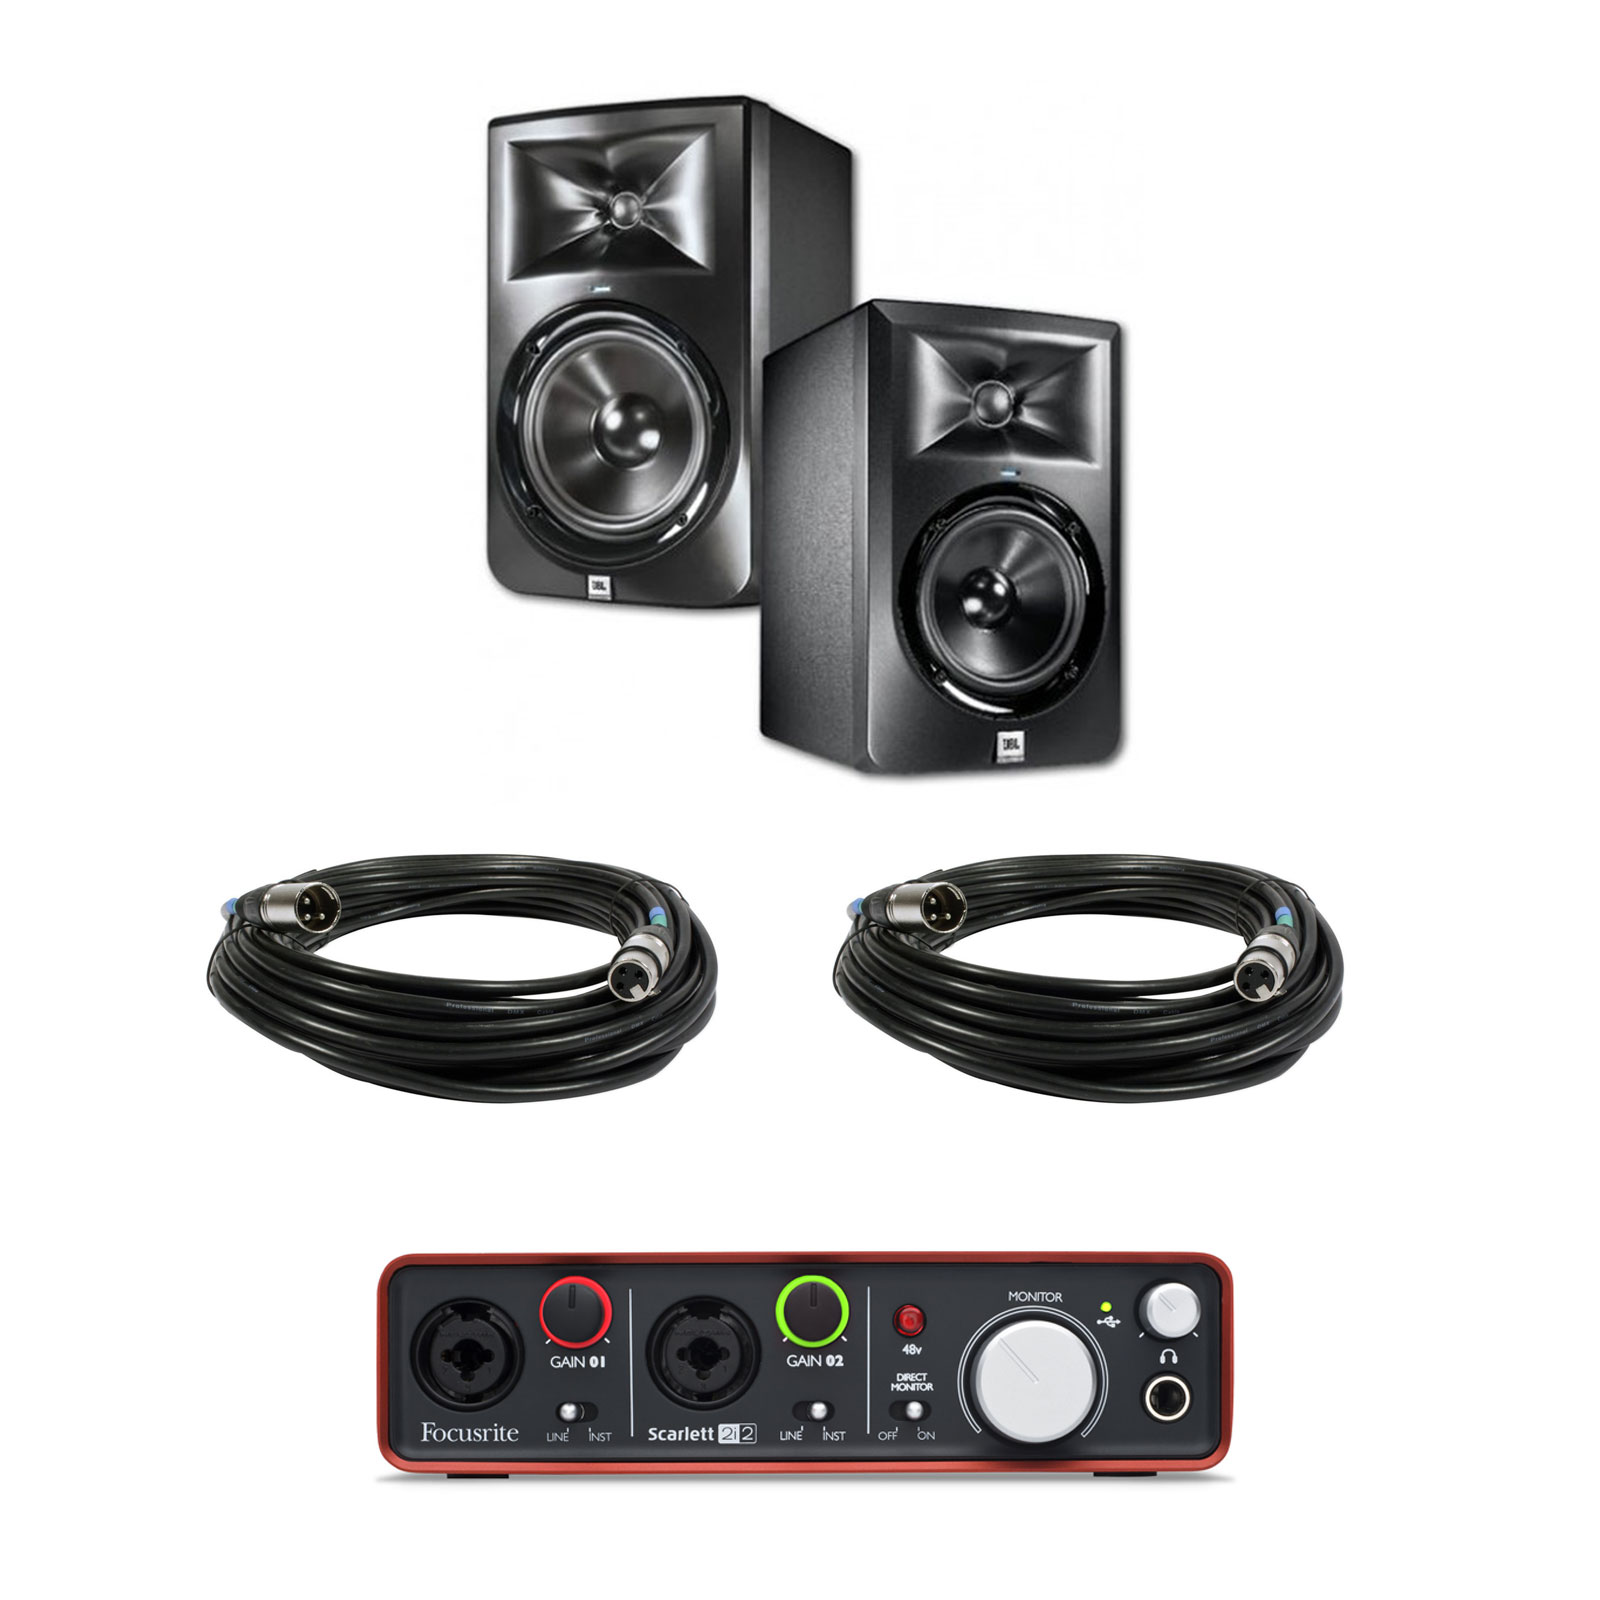 jbl lsr305 monitor speakers focusrite scarlett 2i2 interface 2 xlr cables ebay. Black Bedroom Furniture Sets. Home Design Ideas